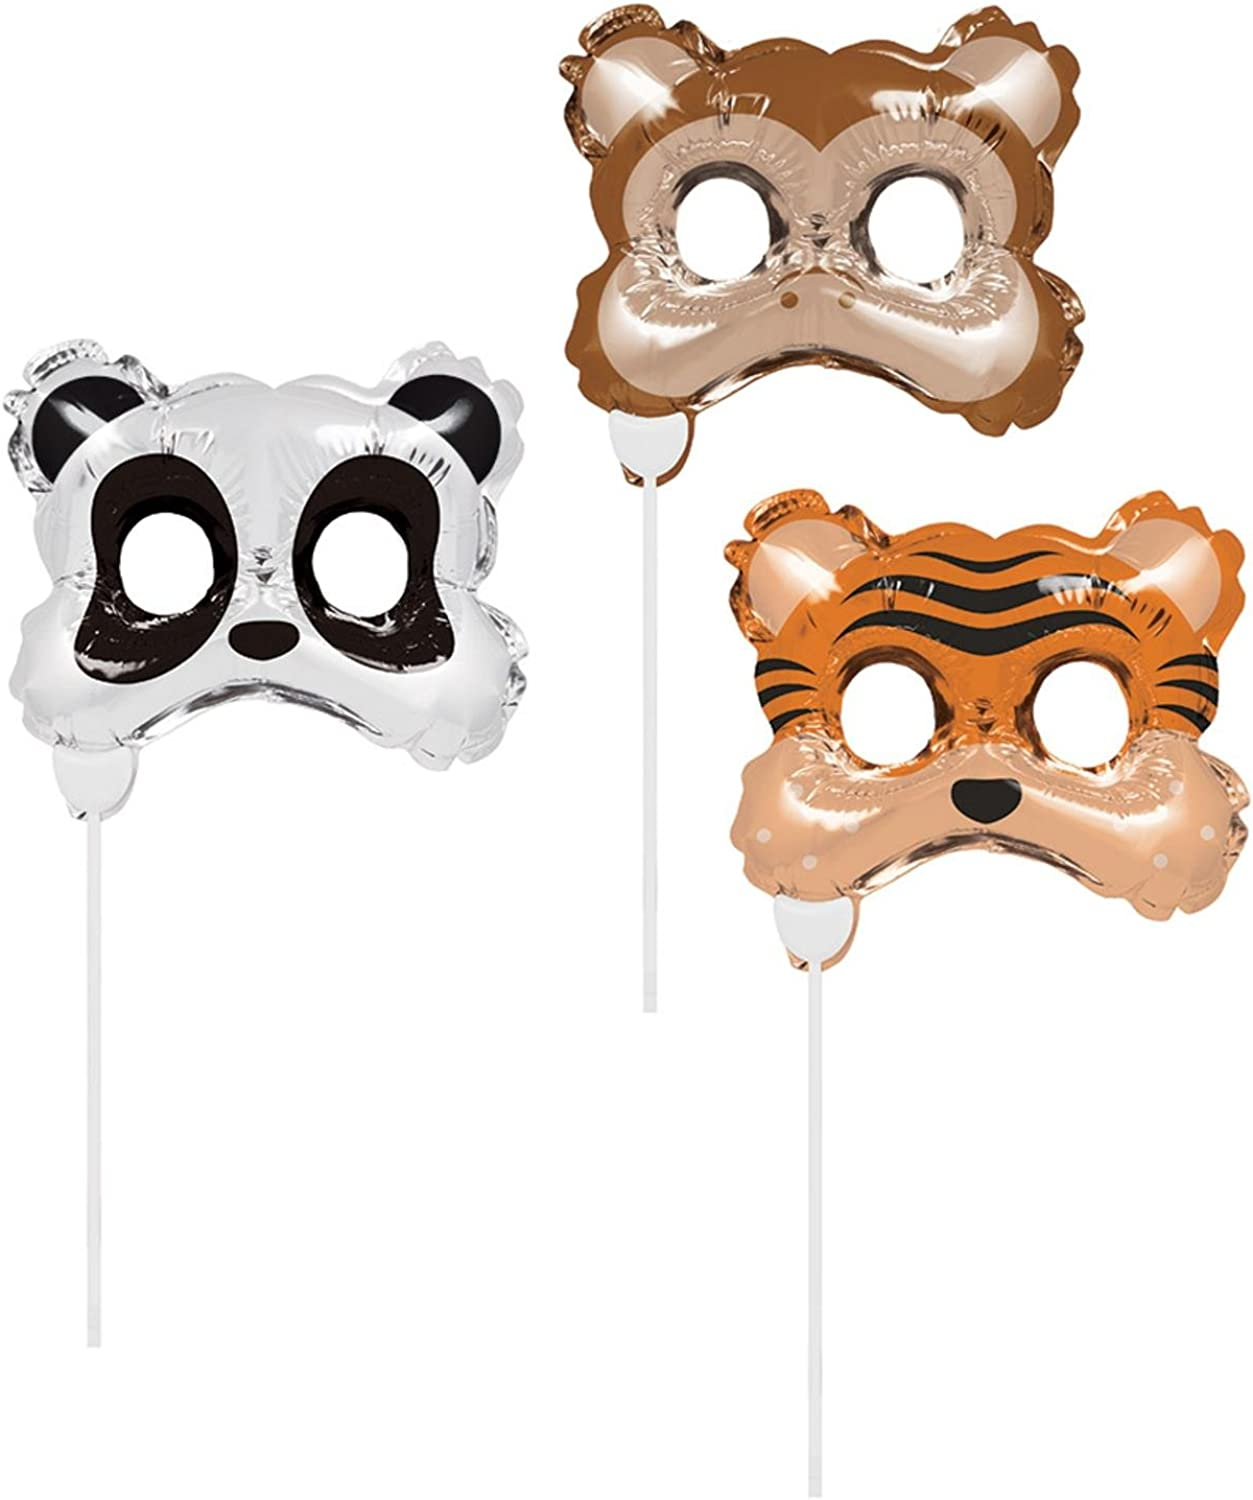 Creative Congreenting 8C331815 Set of 3 Inflatable Photo Booth Animal Masks, Multicoloured